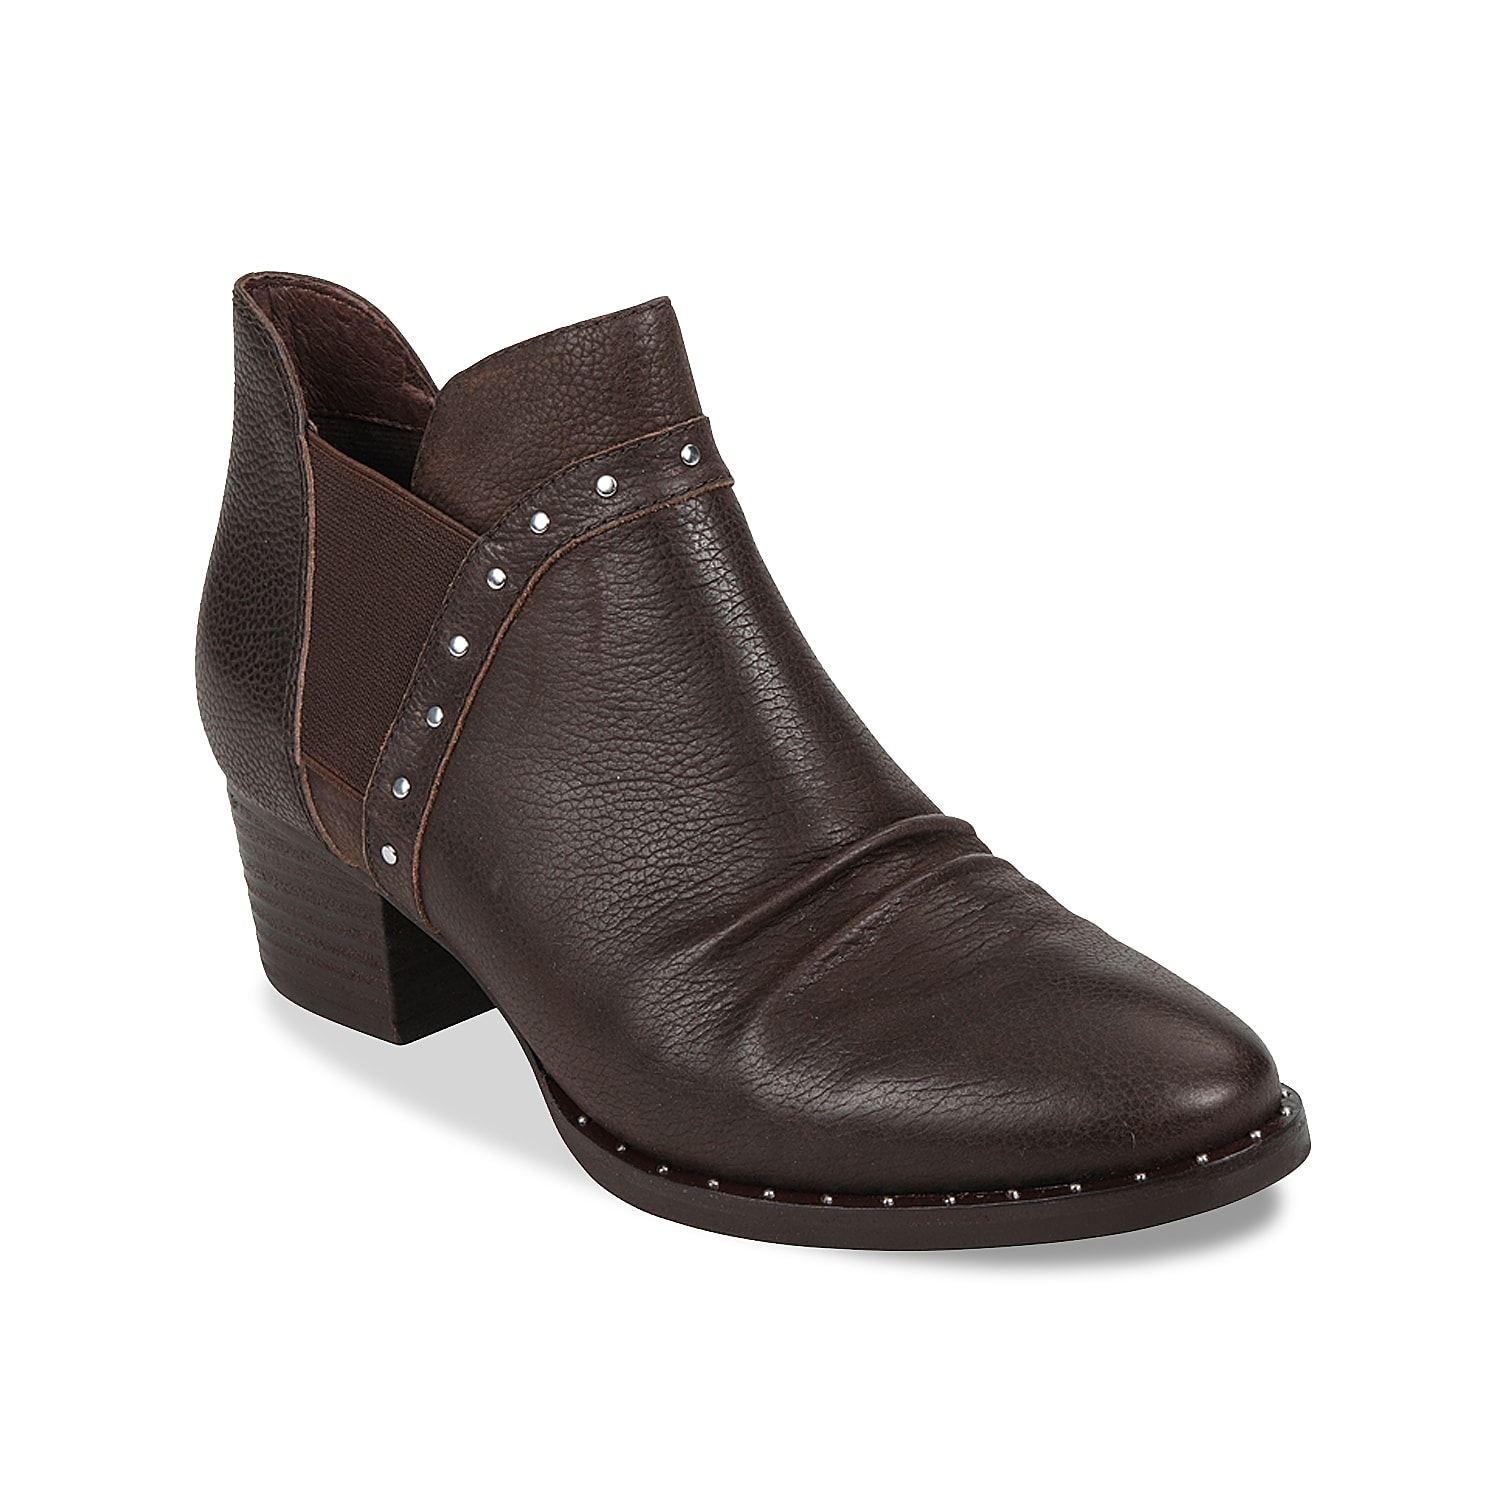 Give your shoe collection a modern look with the Delrio Chelsea boot from Earth. This leather pair is fashioned with dual side gores and stud accents.